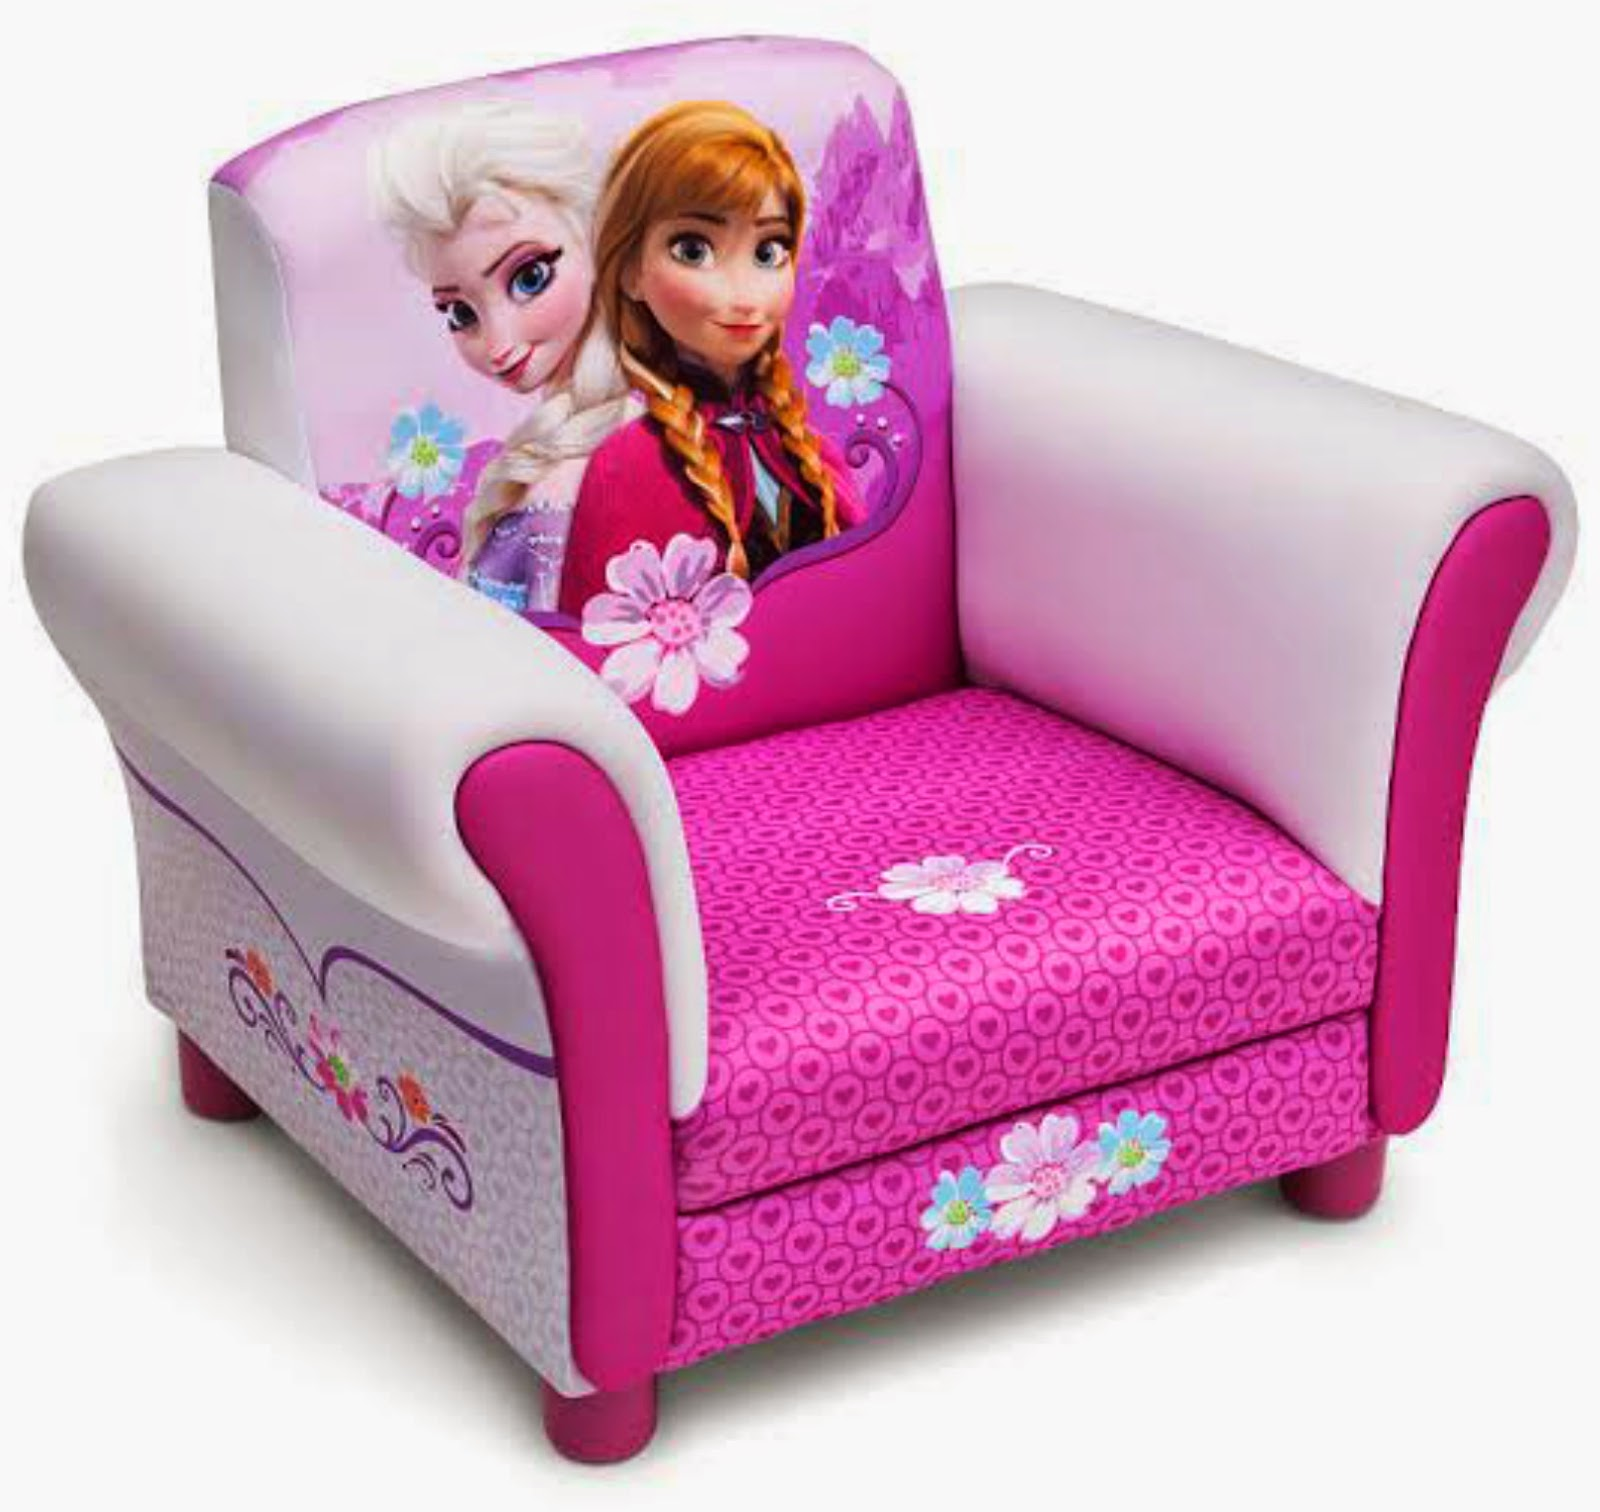 Enter to WIN a Disney's FROZEN Canopy Toddler Bed ...